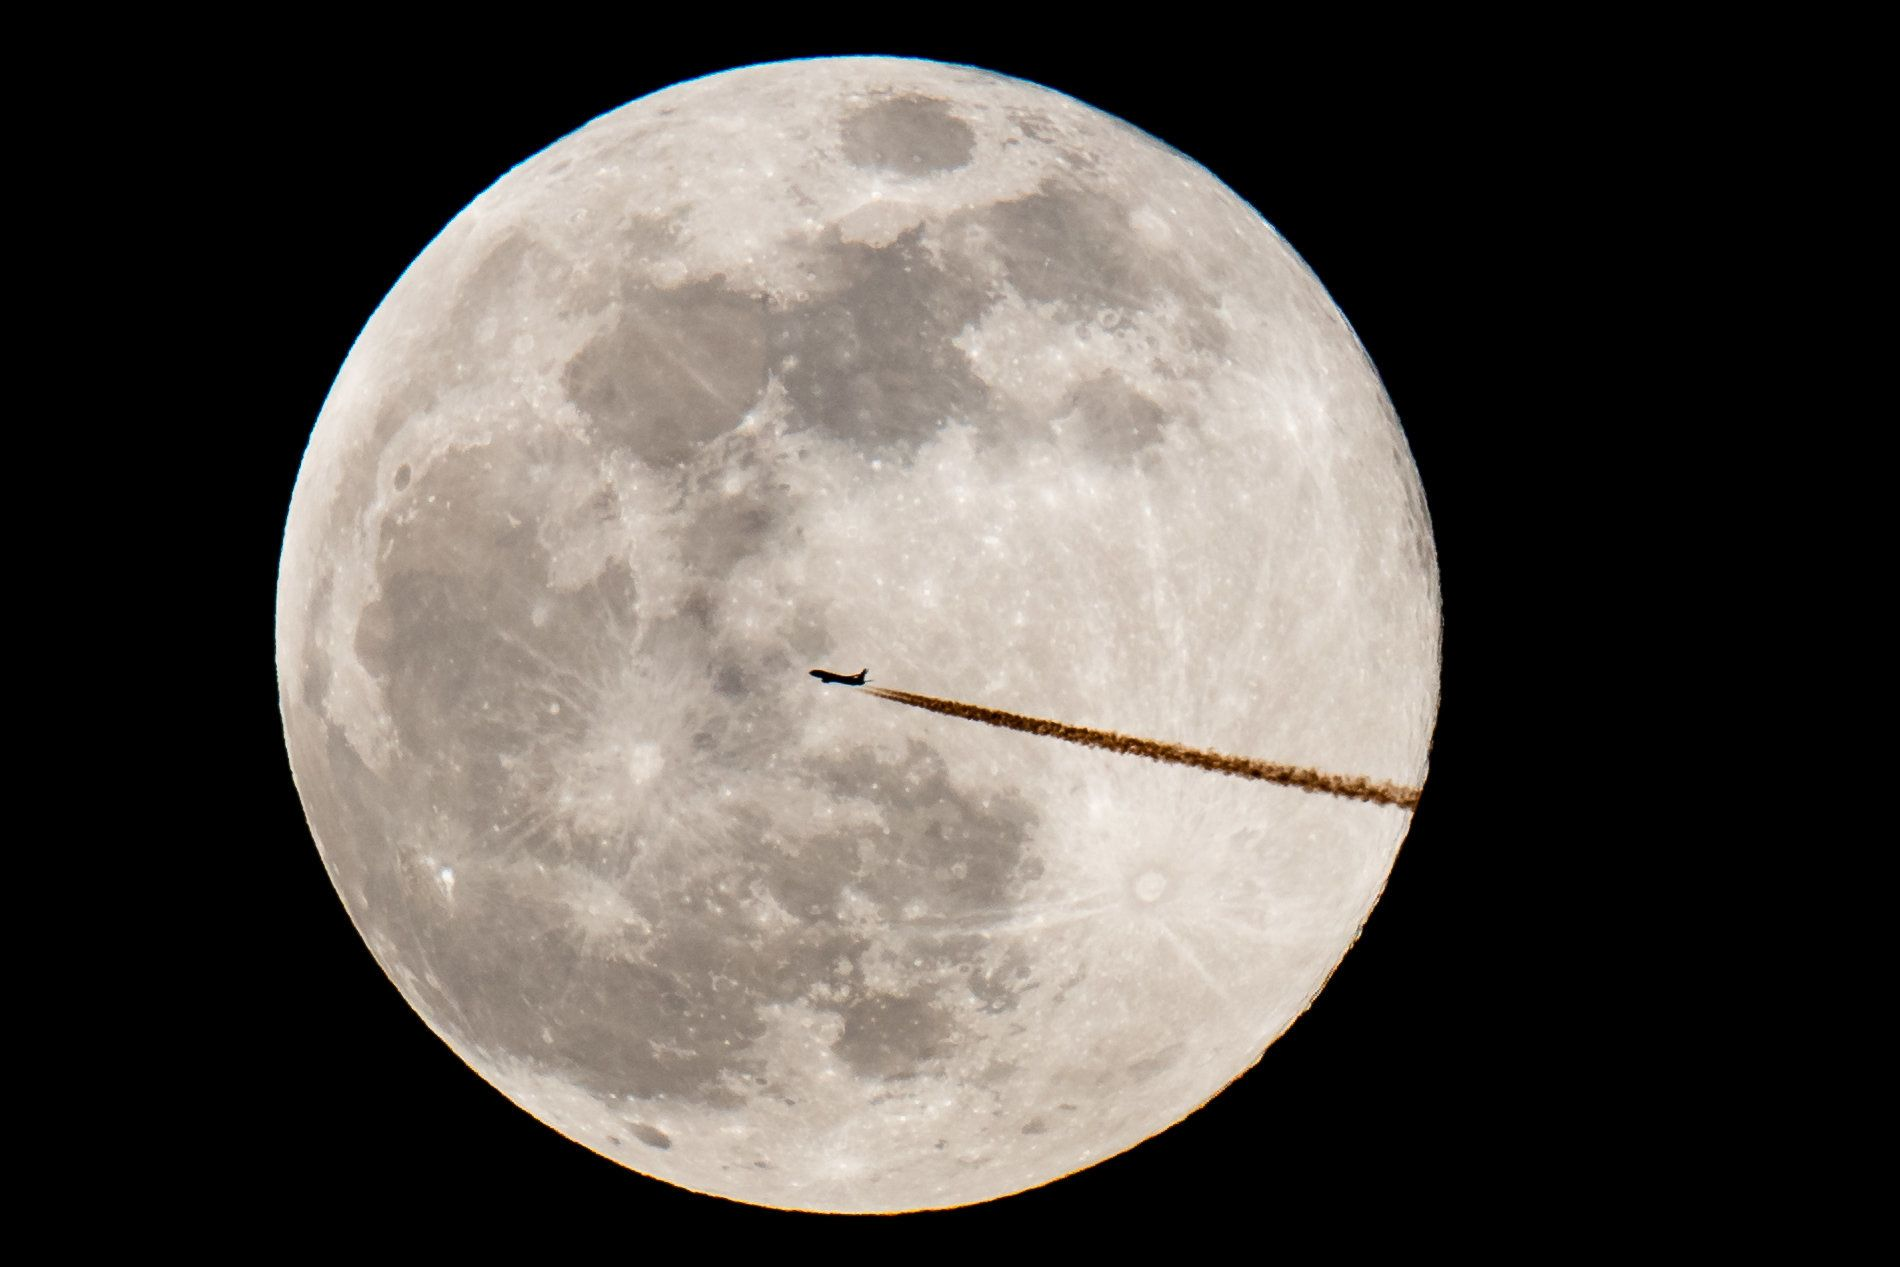 An airplane silhouettes against the Super Moon on February 19, 2019 in Nuremberg, southern Germany. (Photo by Daniel Karmann / dpa / AFP) / Germany OUT        (Photo credit should read DANIEL KARMANN/AFP/Getty Images)